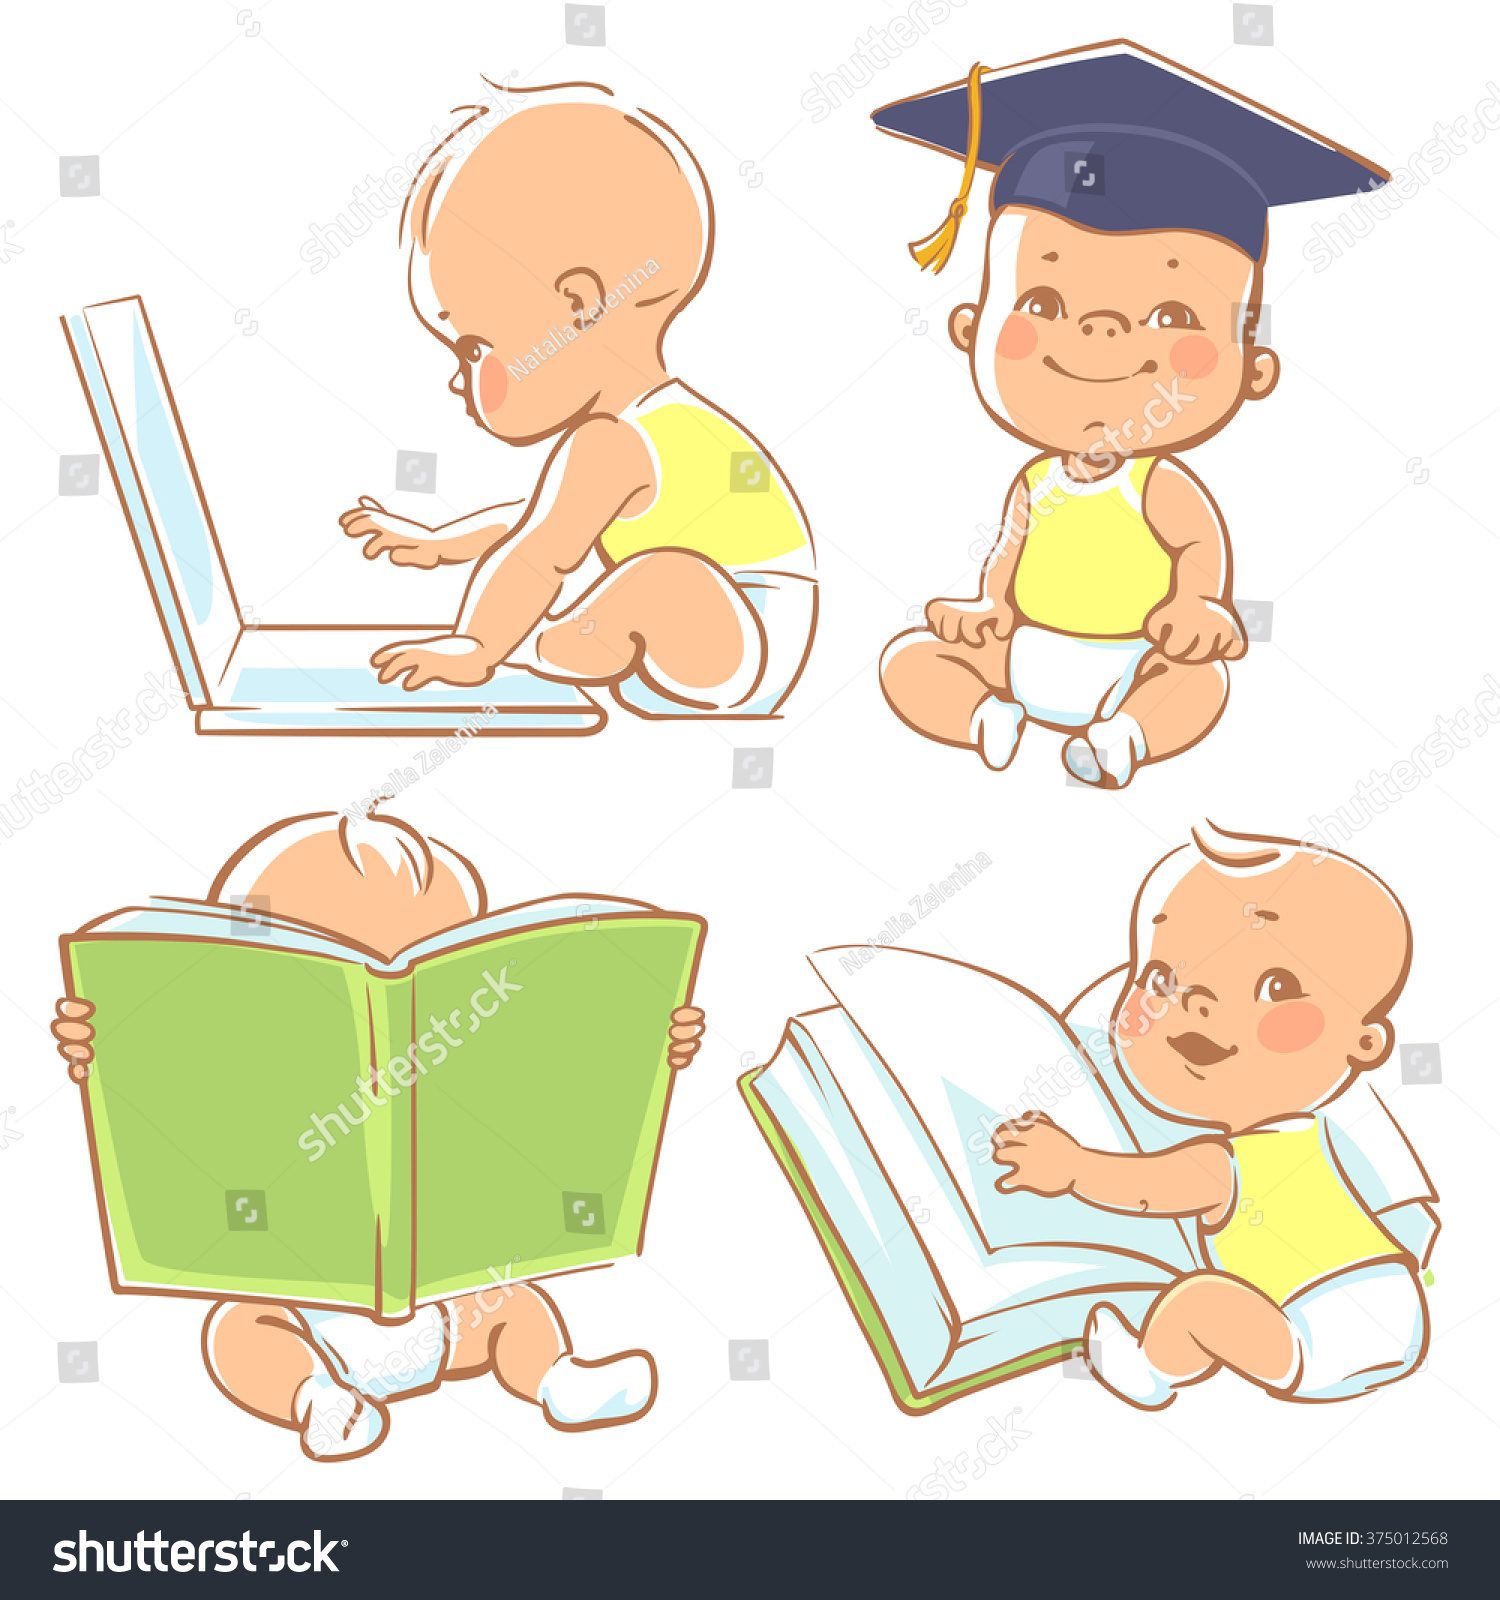 Set With Cute Babies In Diapers Genius Little Boy Reading